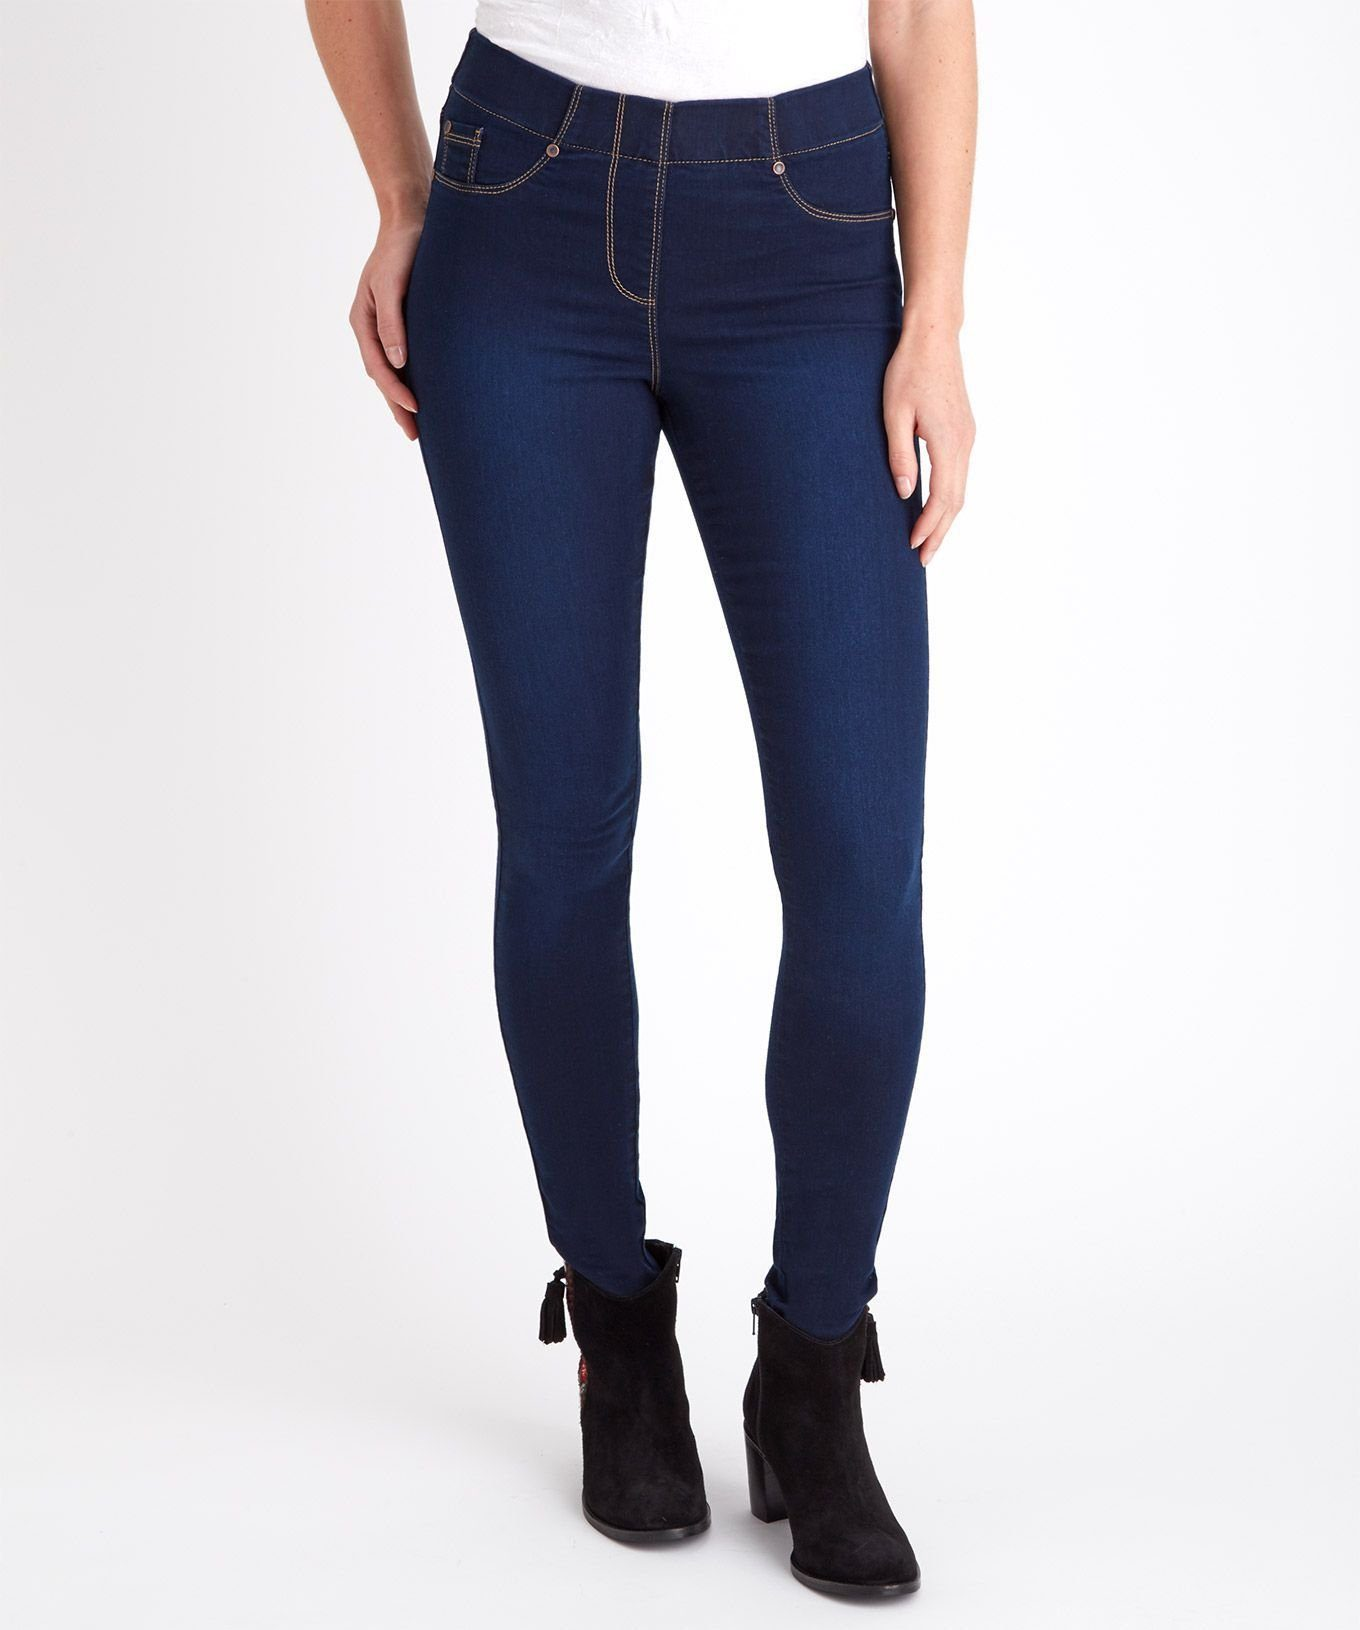 Joe Browns Jeggings »Jeggings mit breitem Bund von Joe Browns für Damen«